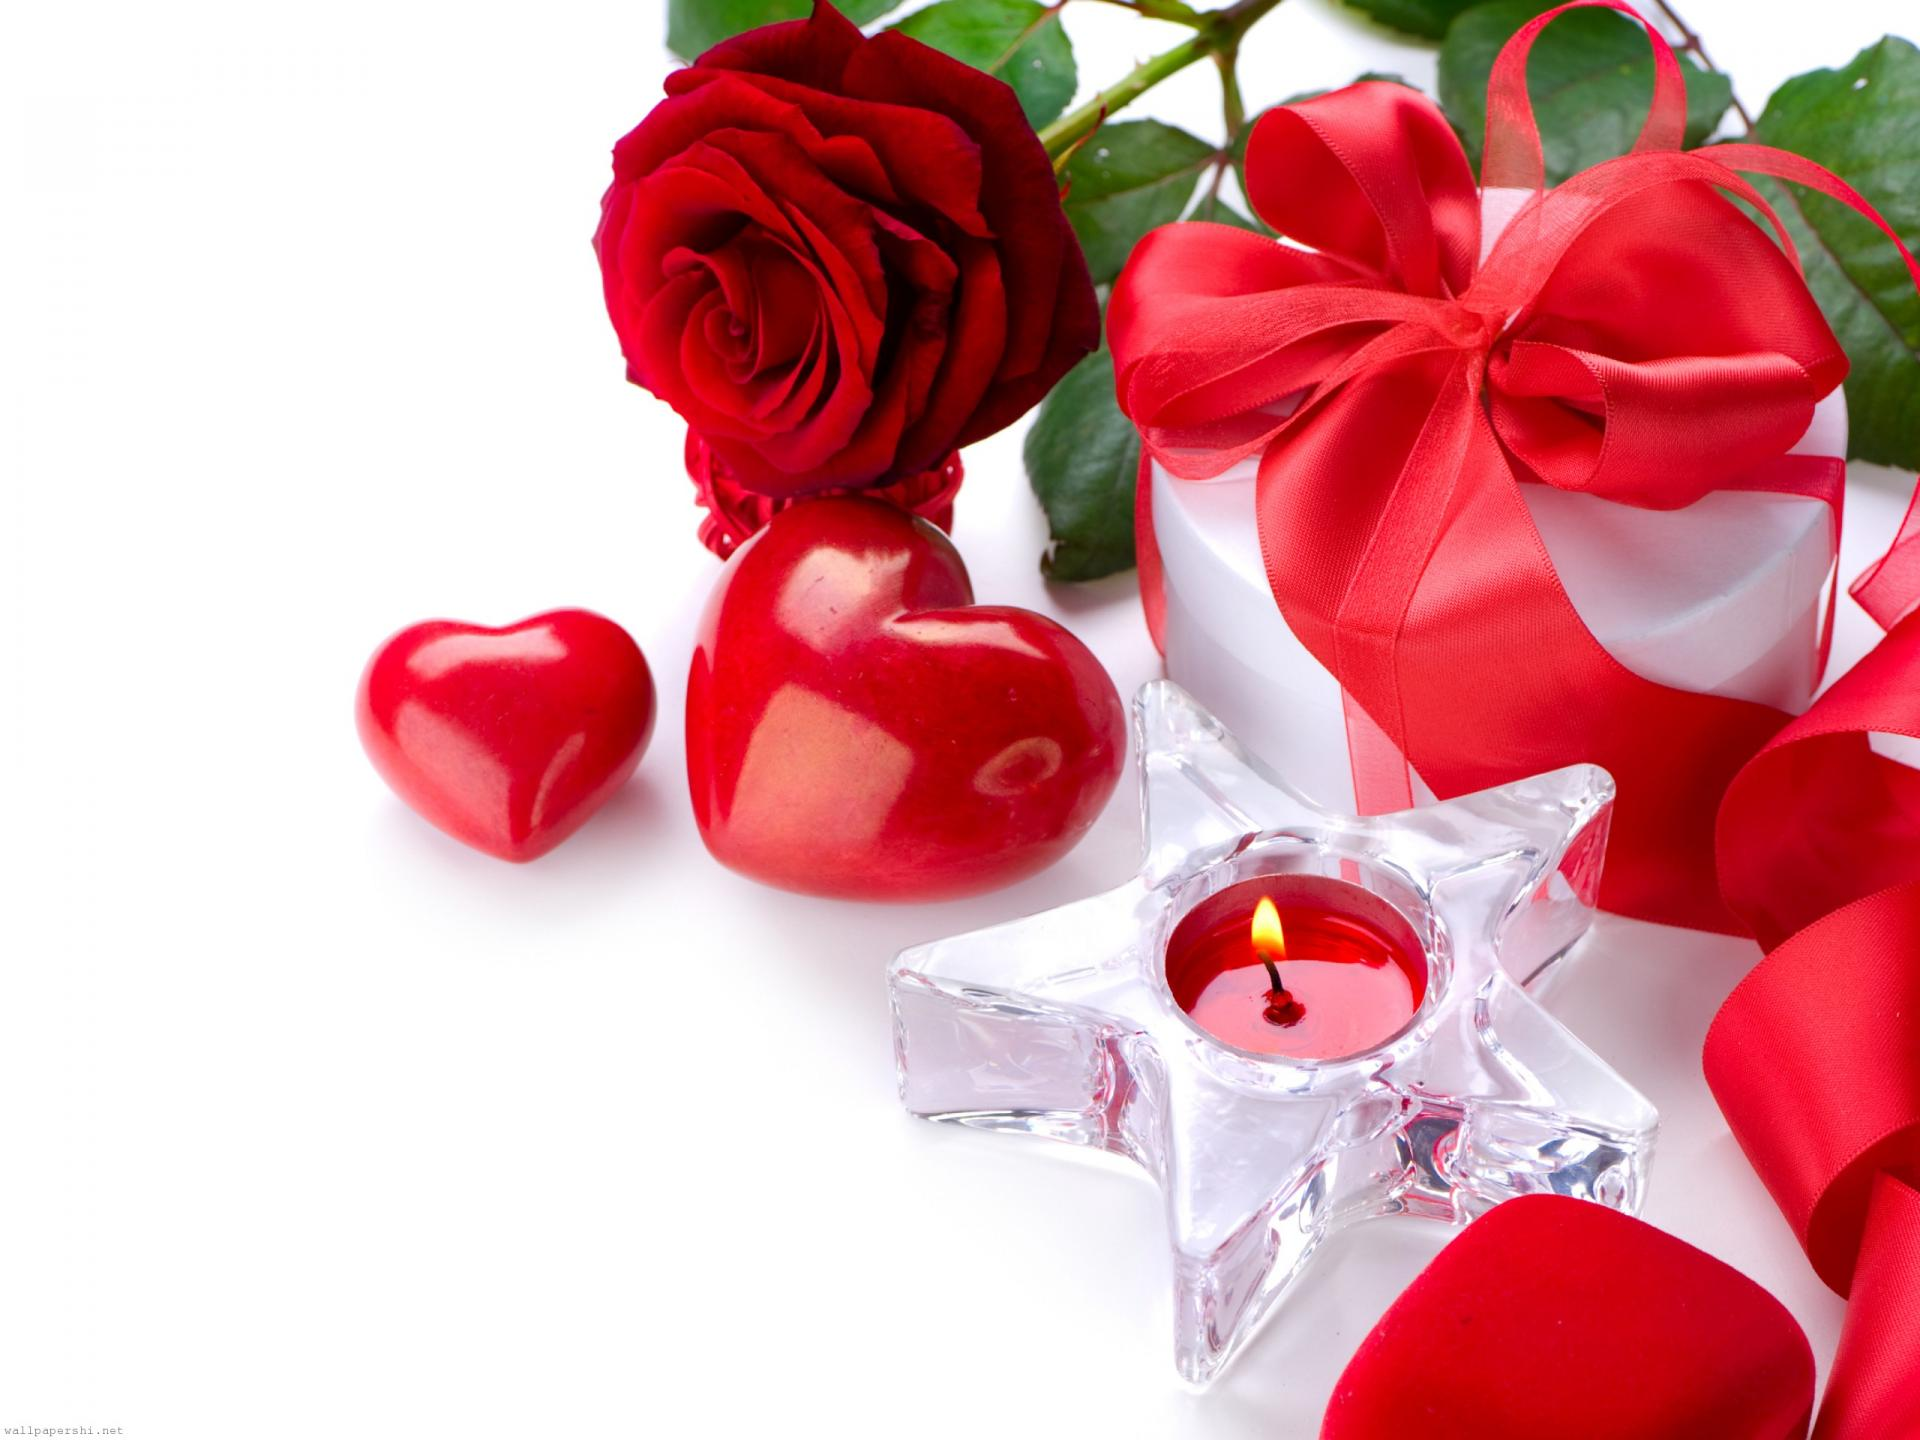 Red Flowers Roses a Candle Heart Gifts Crystal Holiday wallpaper